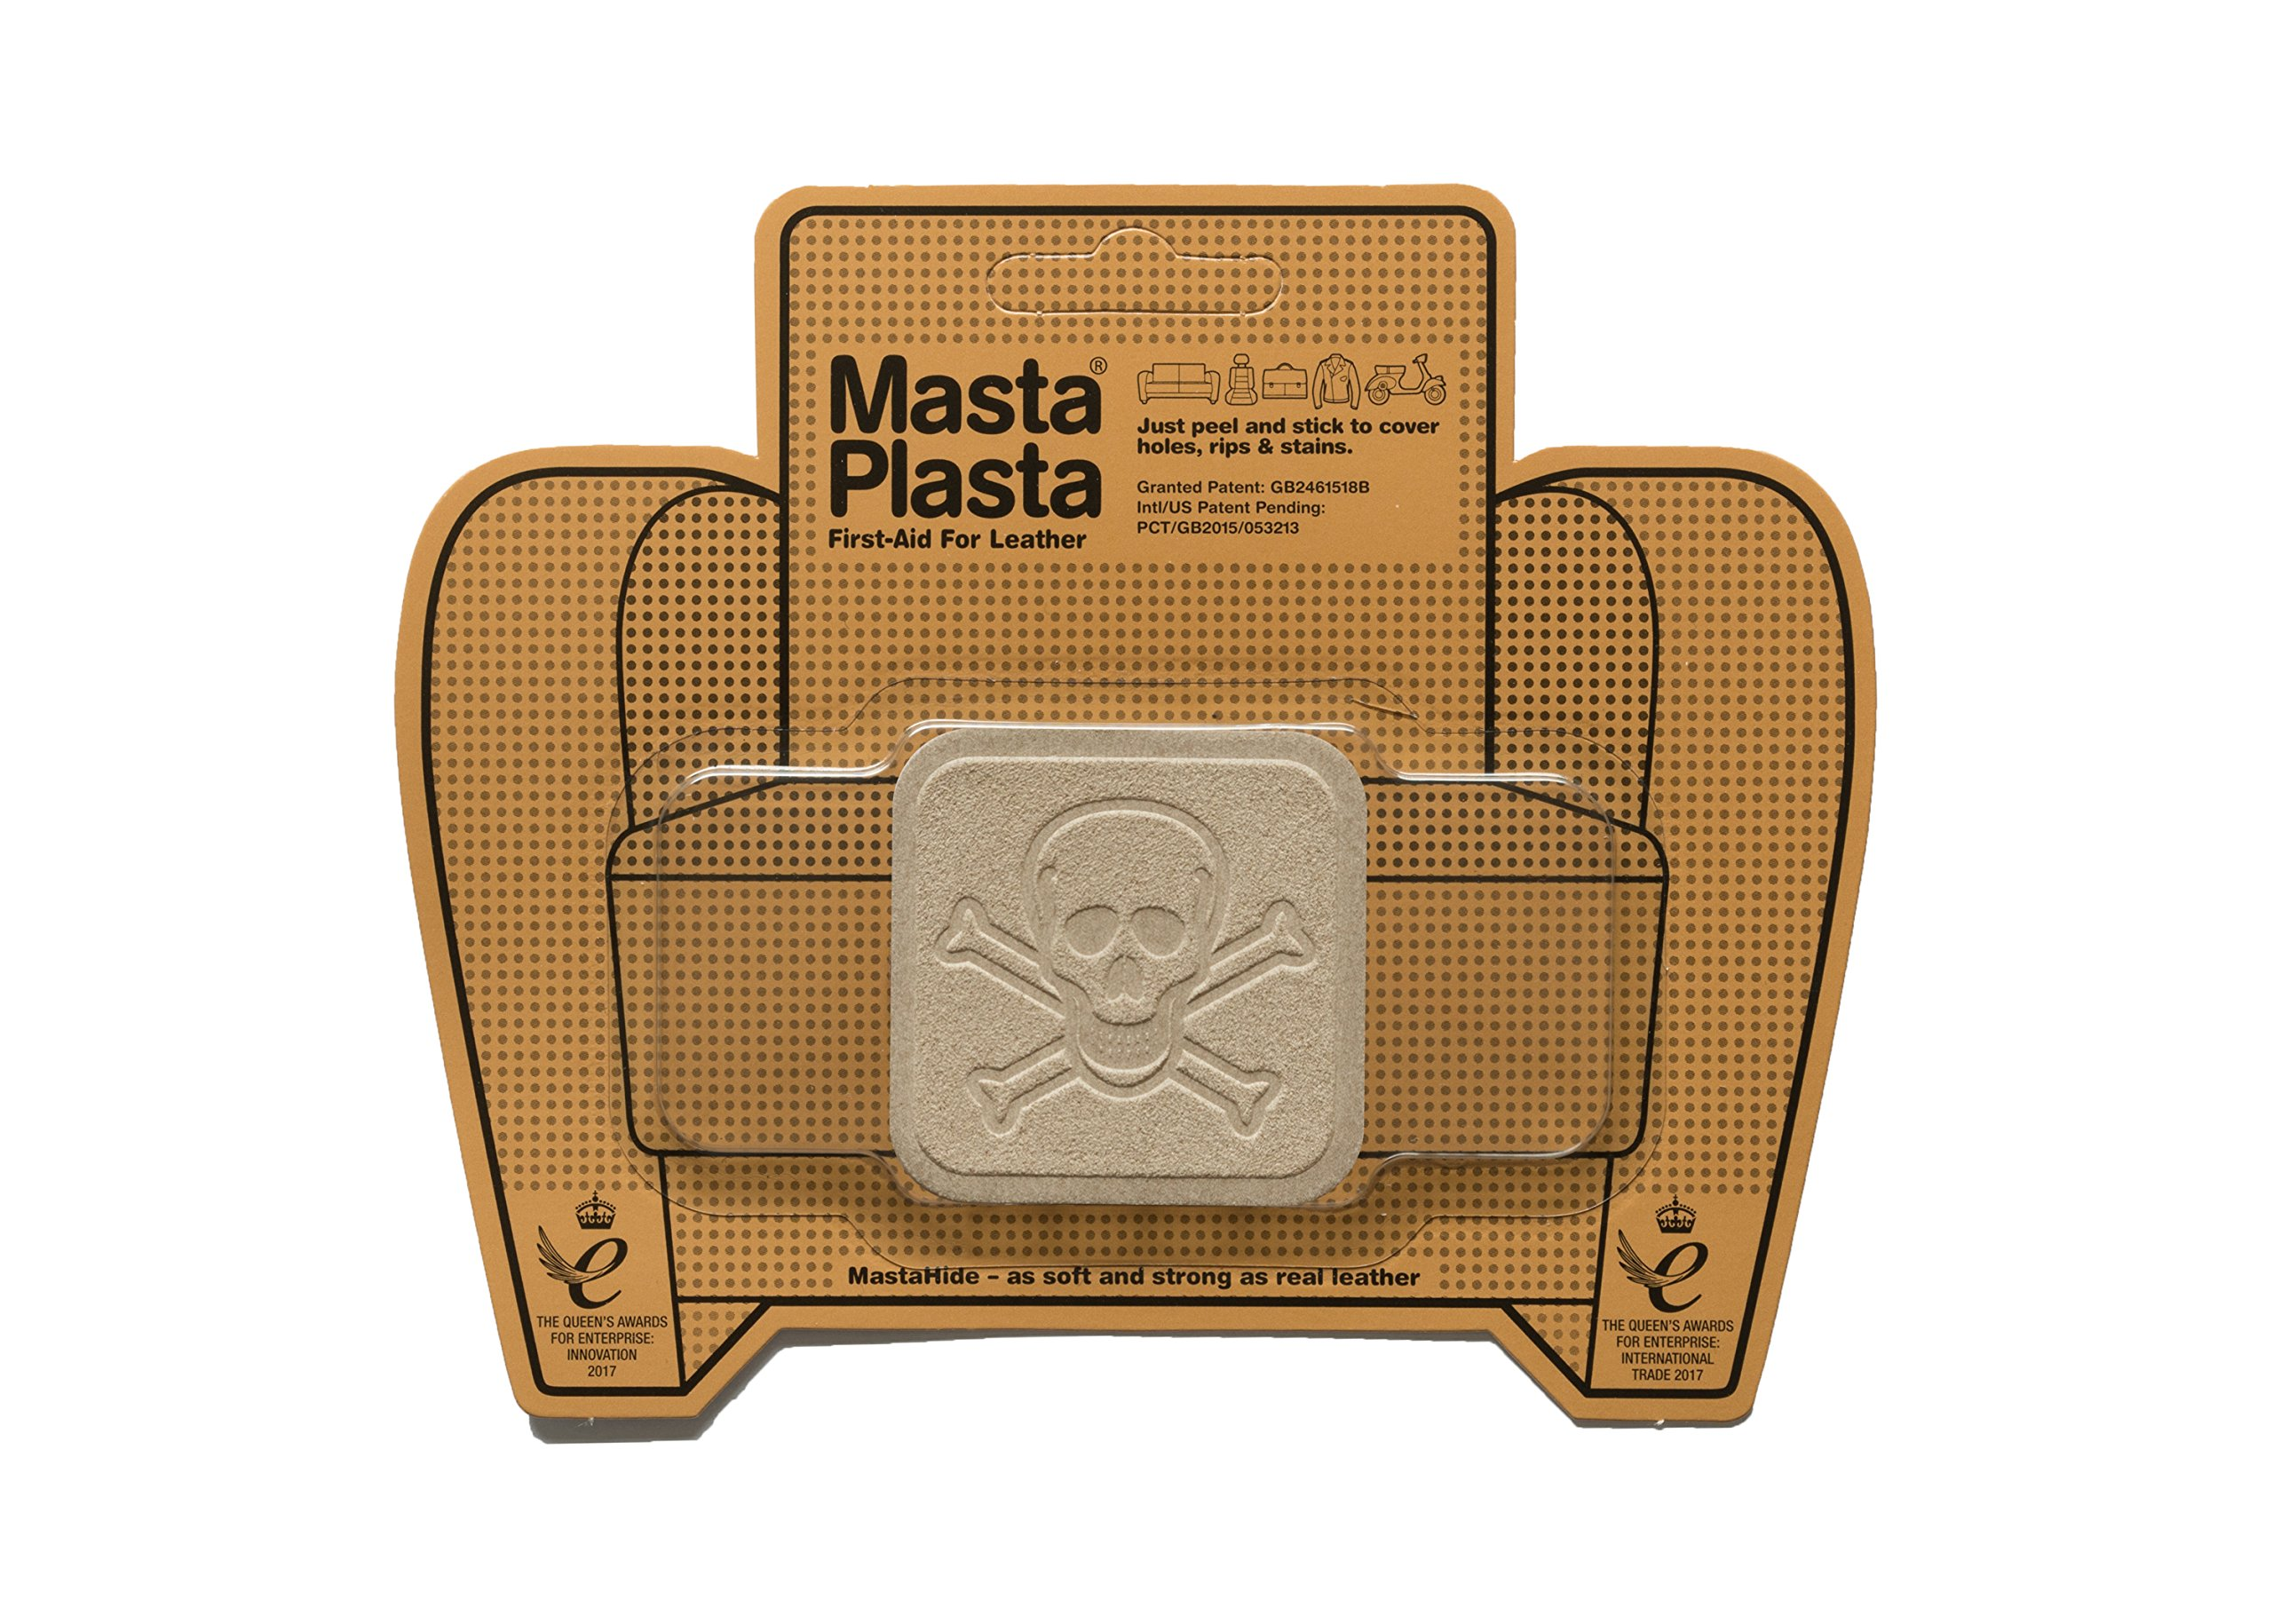 MastaPlasta, Leather Repair Patch, First-aid for Sofas Car Seats, Handbags Jackets, Beige Suede Pirate